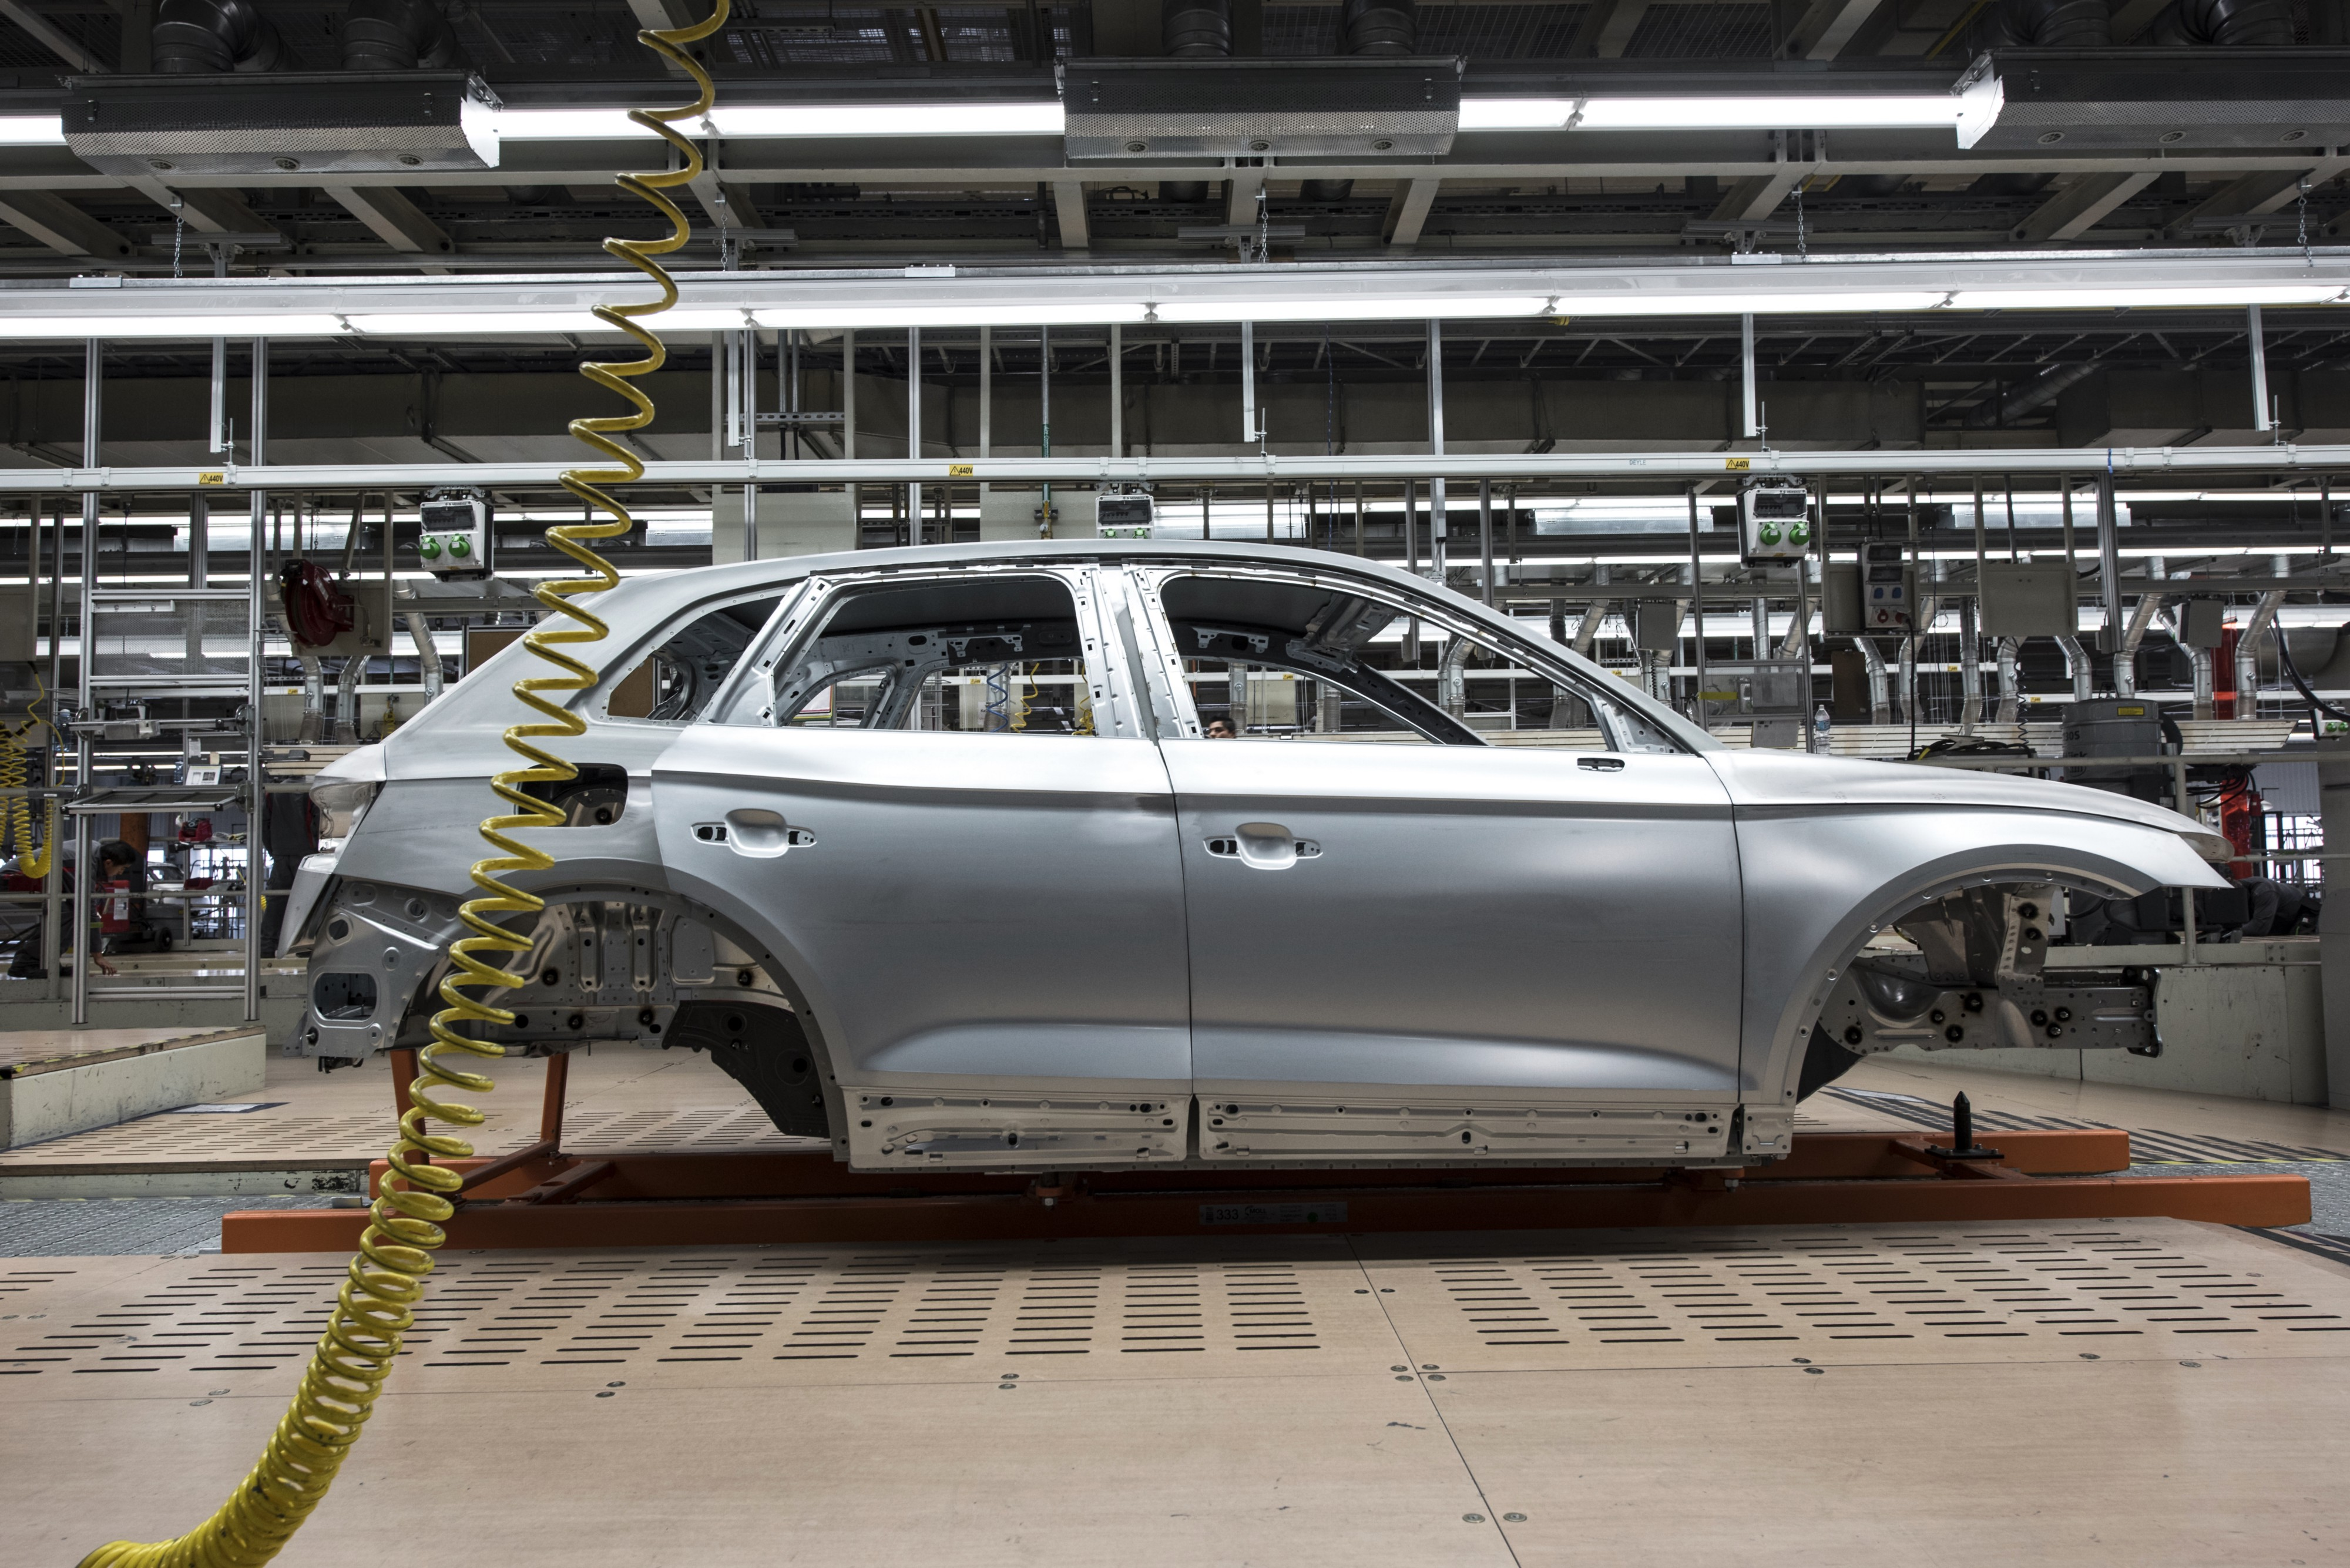 An incomplete car on a production line in a car factory.